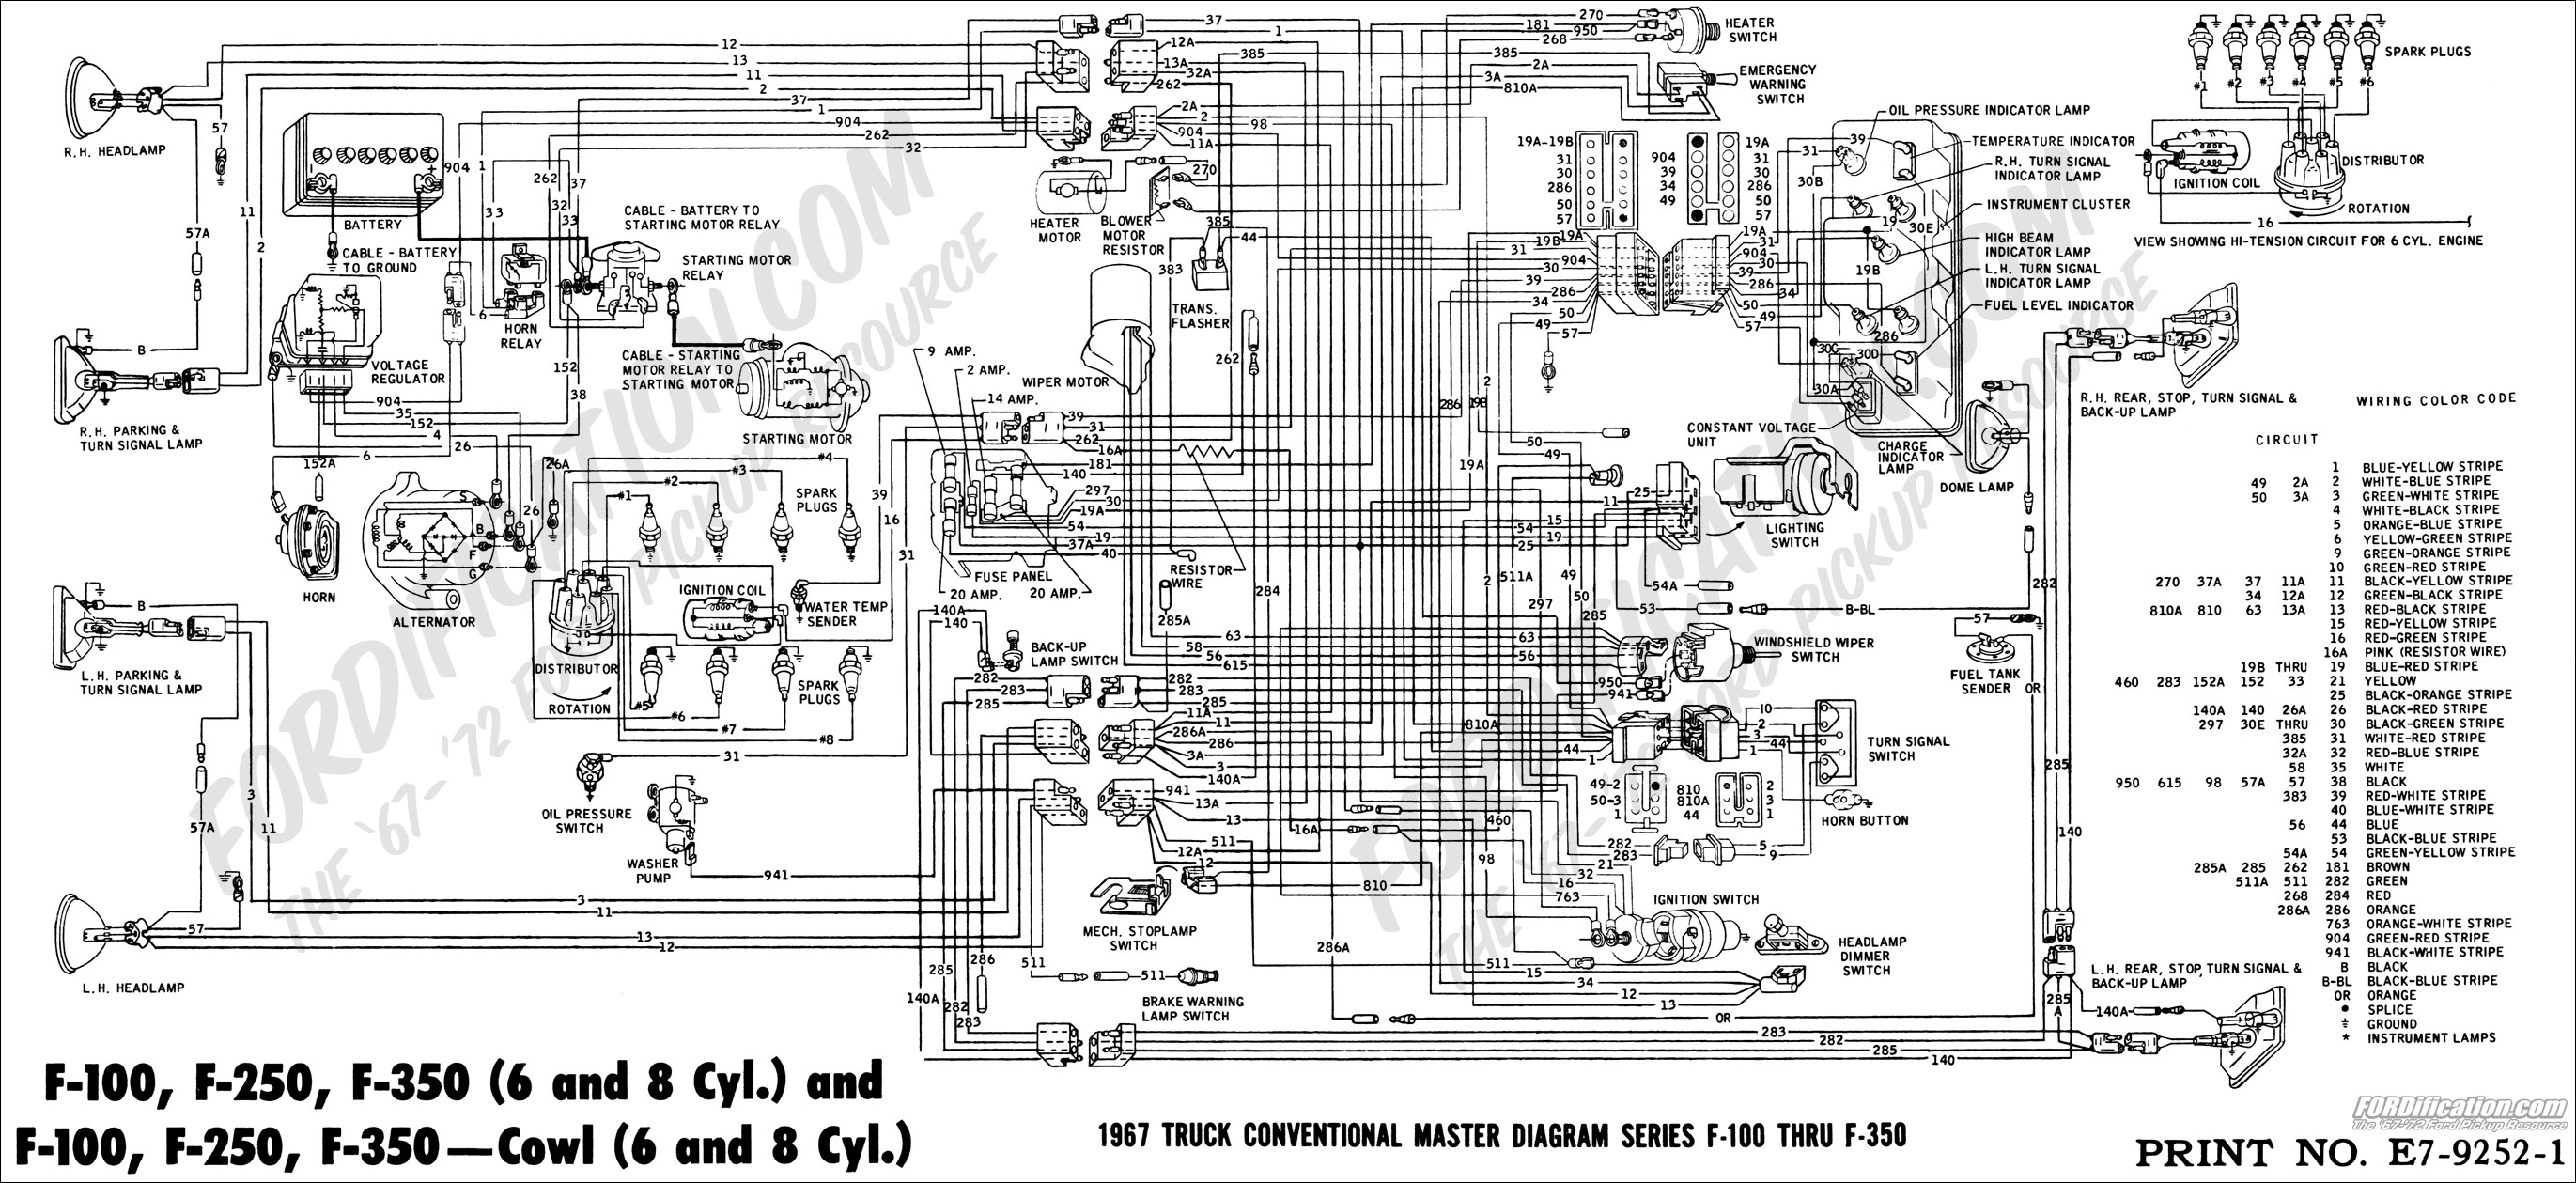 67masterdiagram 1999 ford radio wiring diagram turcolea com 1999 ford f350 radio wiring diagram at suagrazia.org